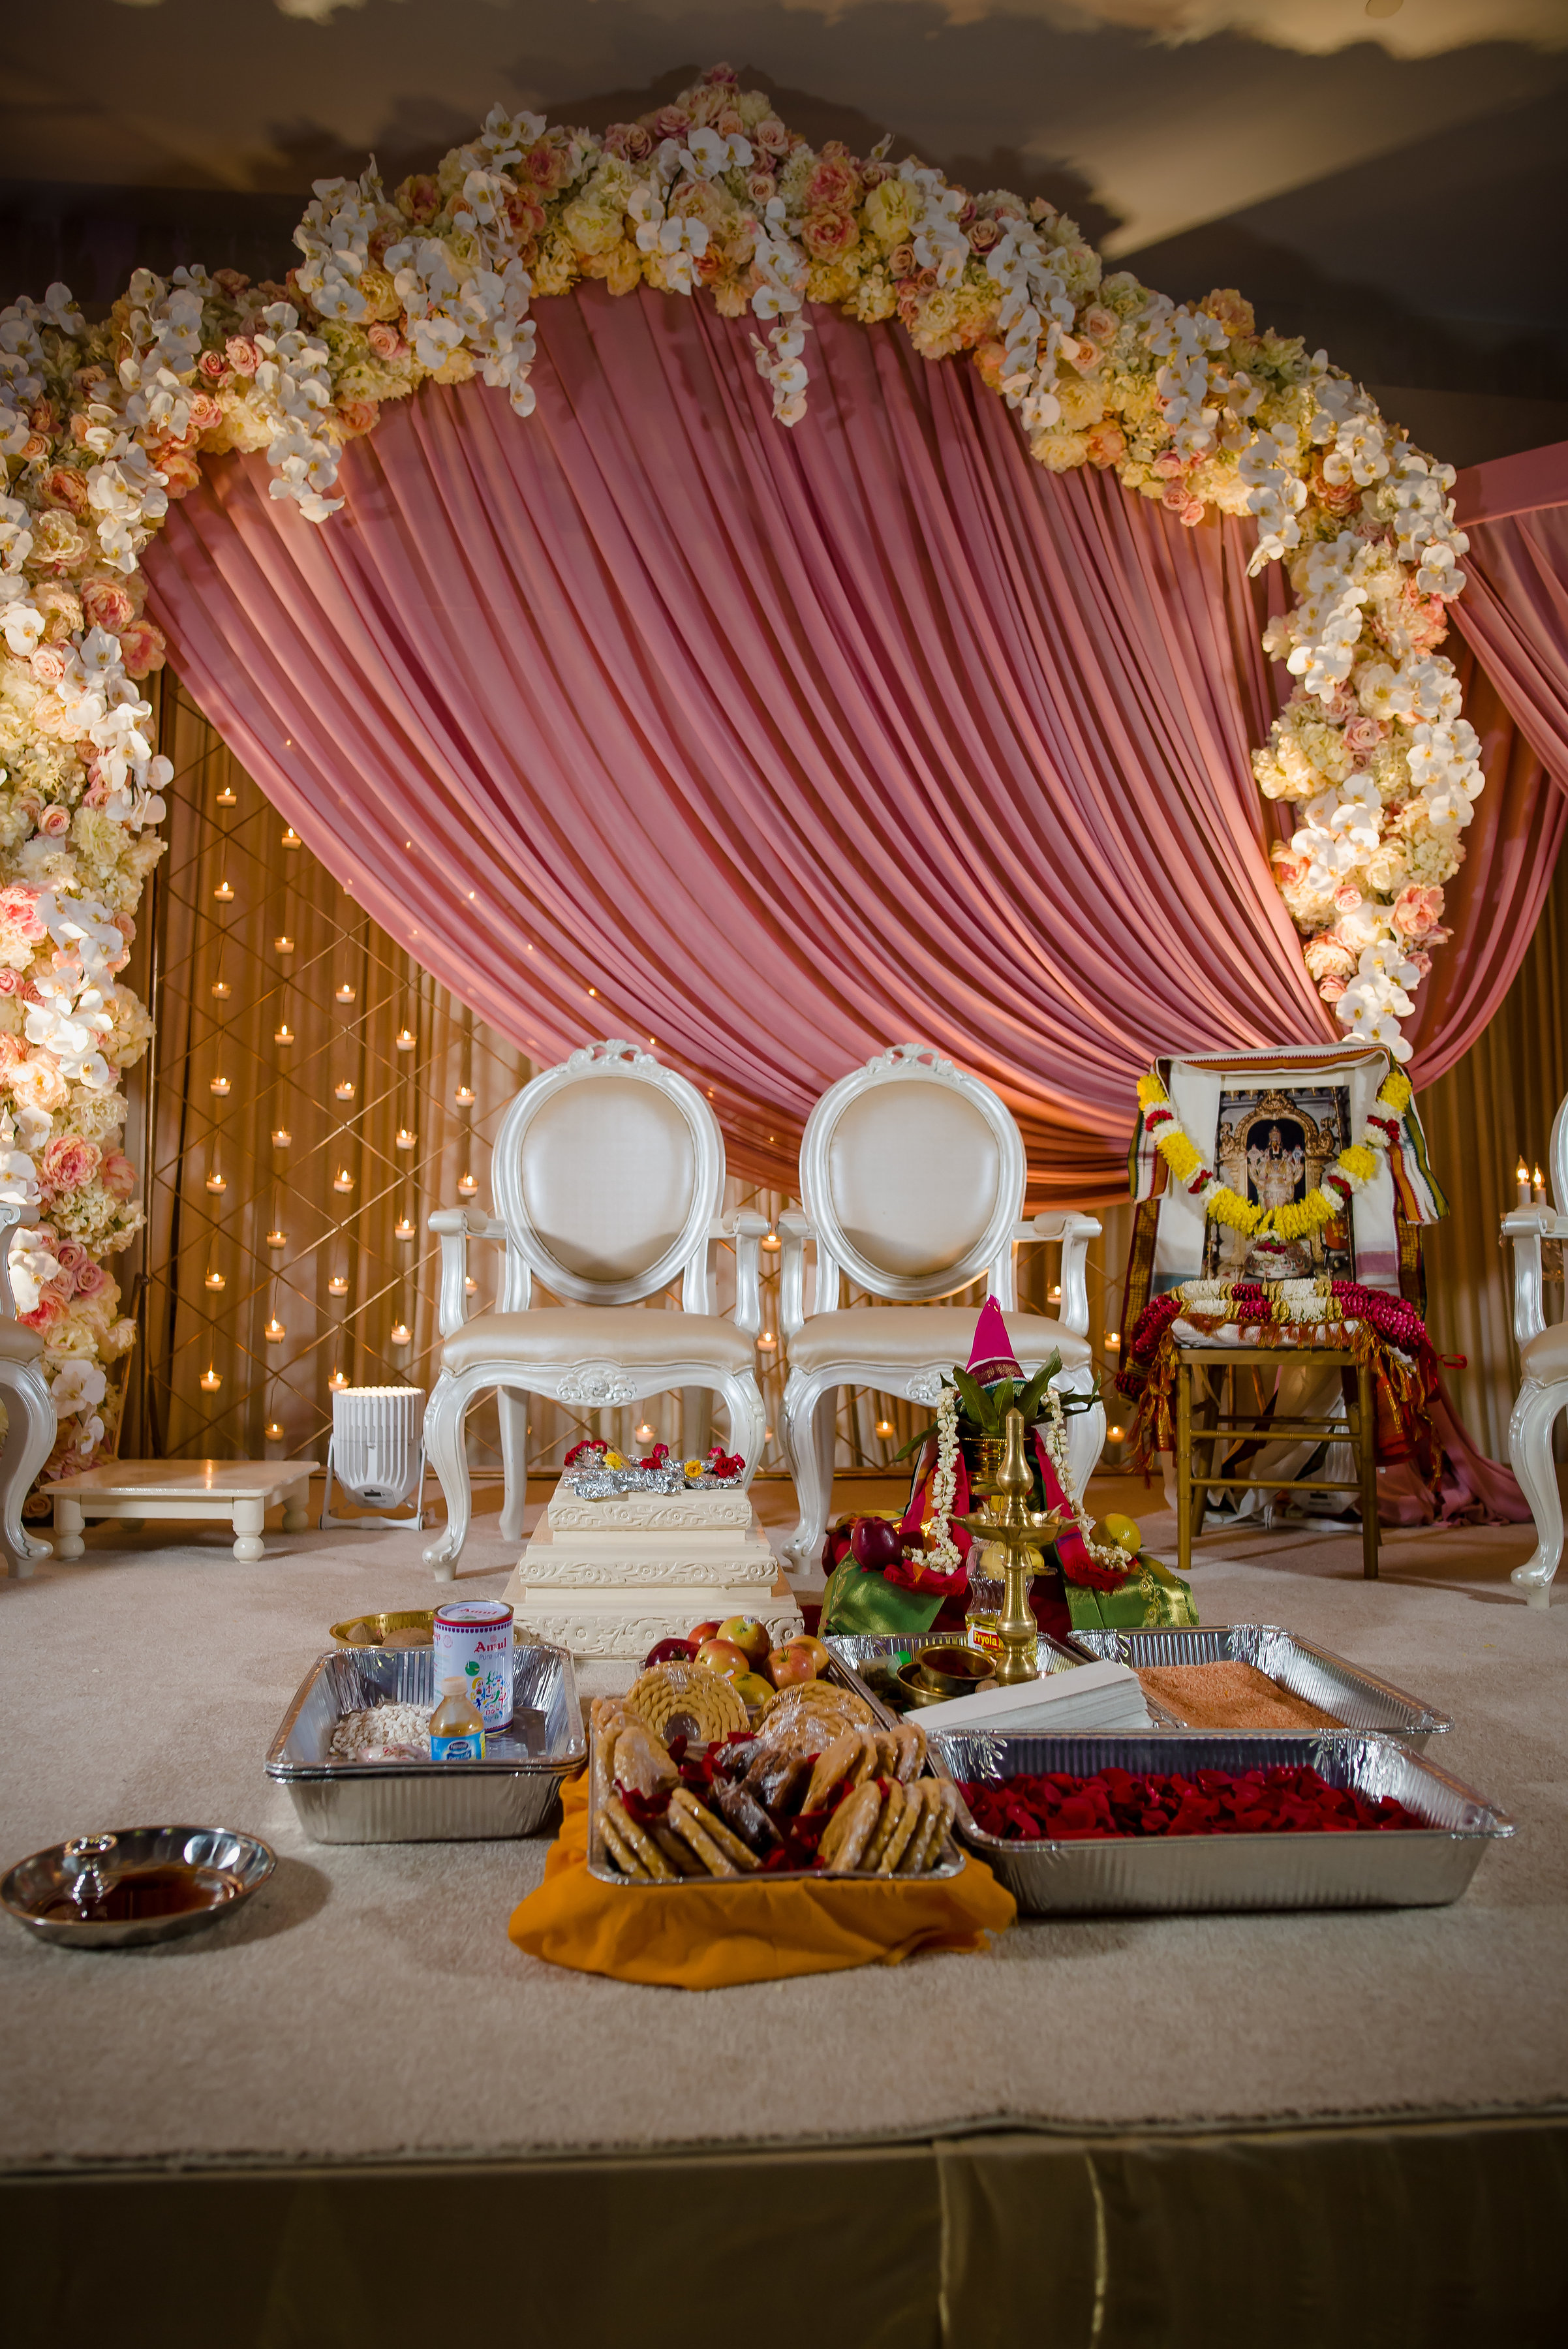 PINK MANDAP WITH FLOWERS